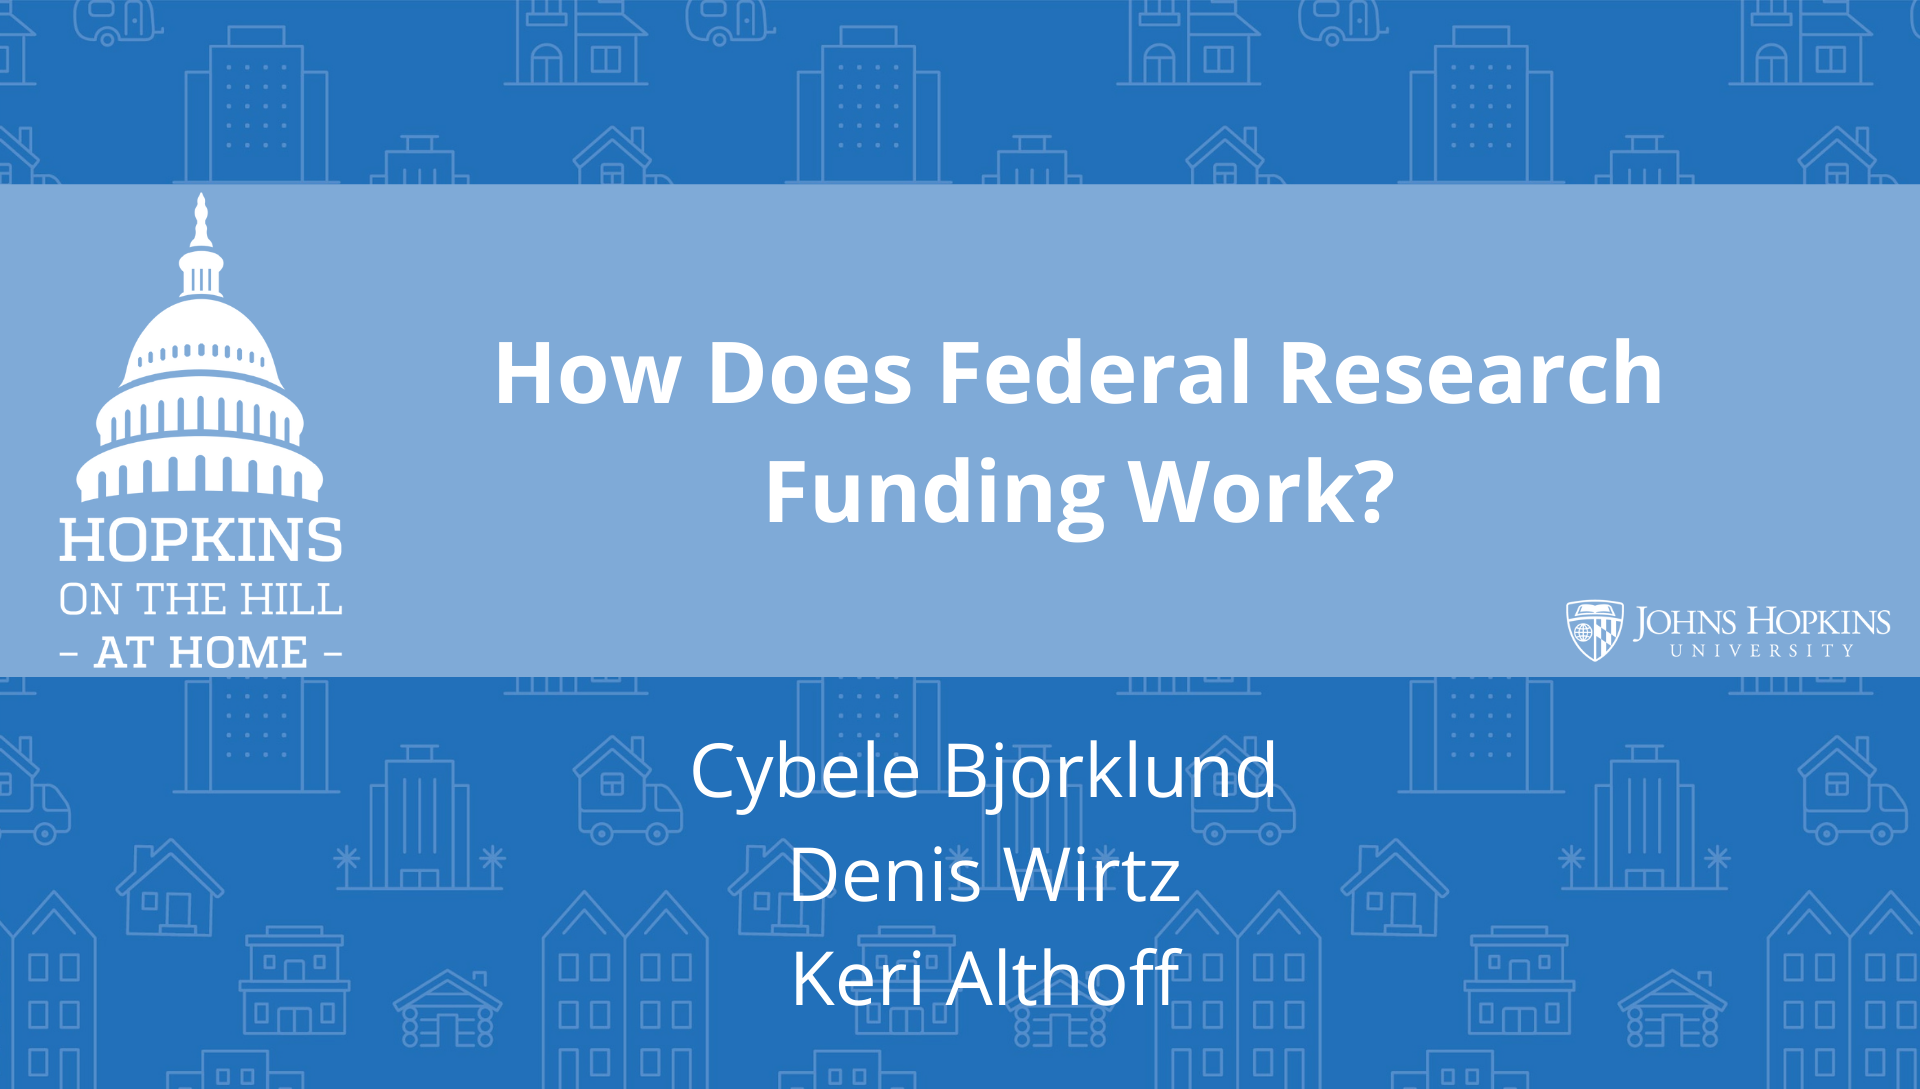 "Solid blue background featuring line drawings of various types of homes with text reading ""How Does Federal Research Funding Work?"" and names listed below: Cybele Bjorklund, Denis Wirtz, Keri Althoff. On the left the Hopkins on the Hill at Home logo featuring the Capitol Dome. On the right, the Johns Hopkins University logo."